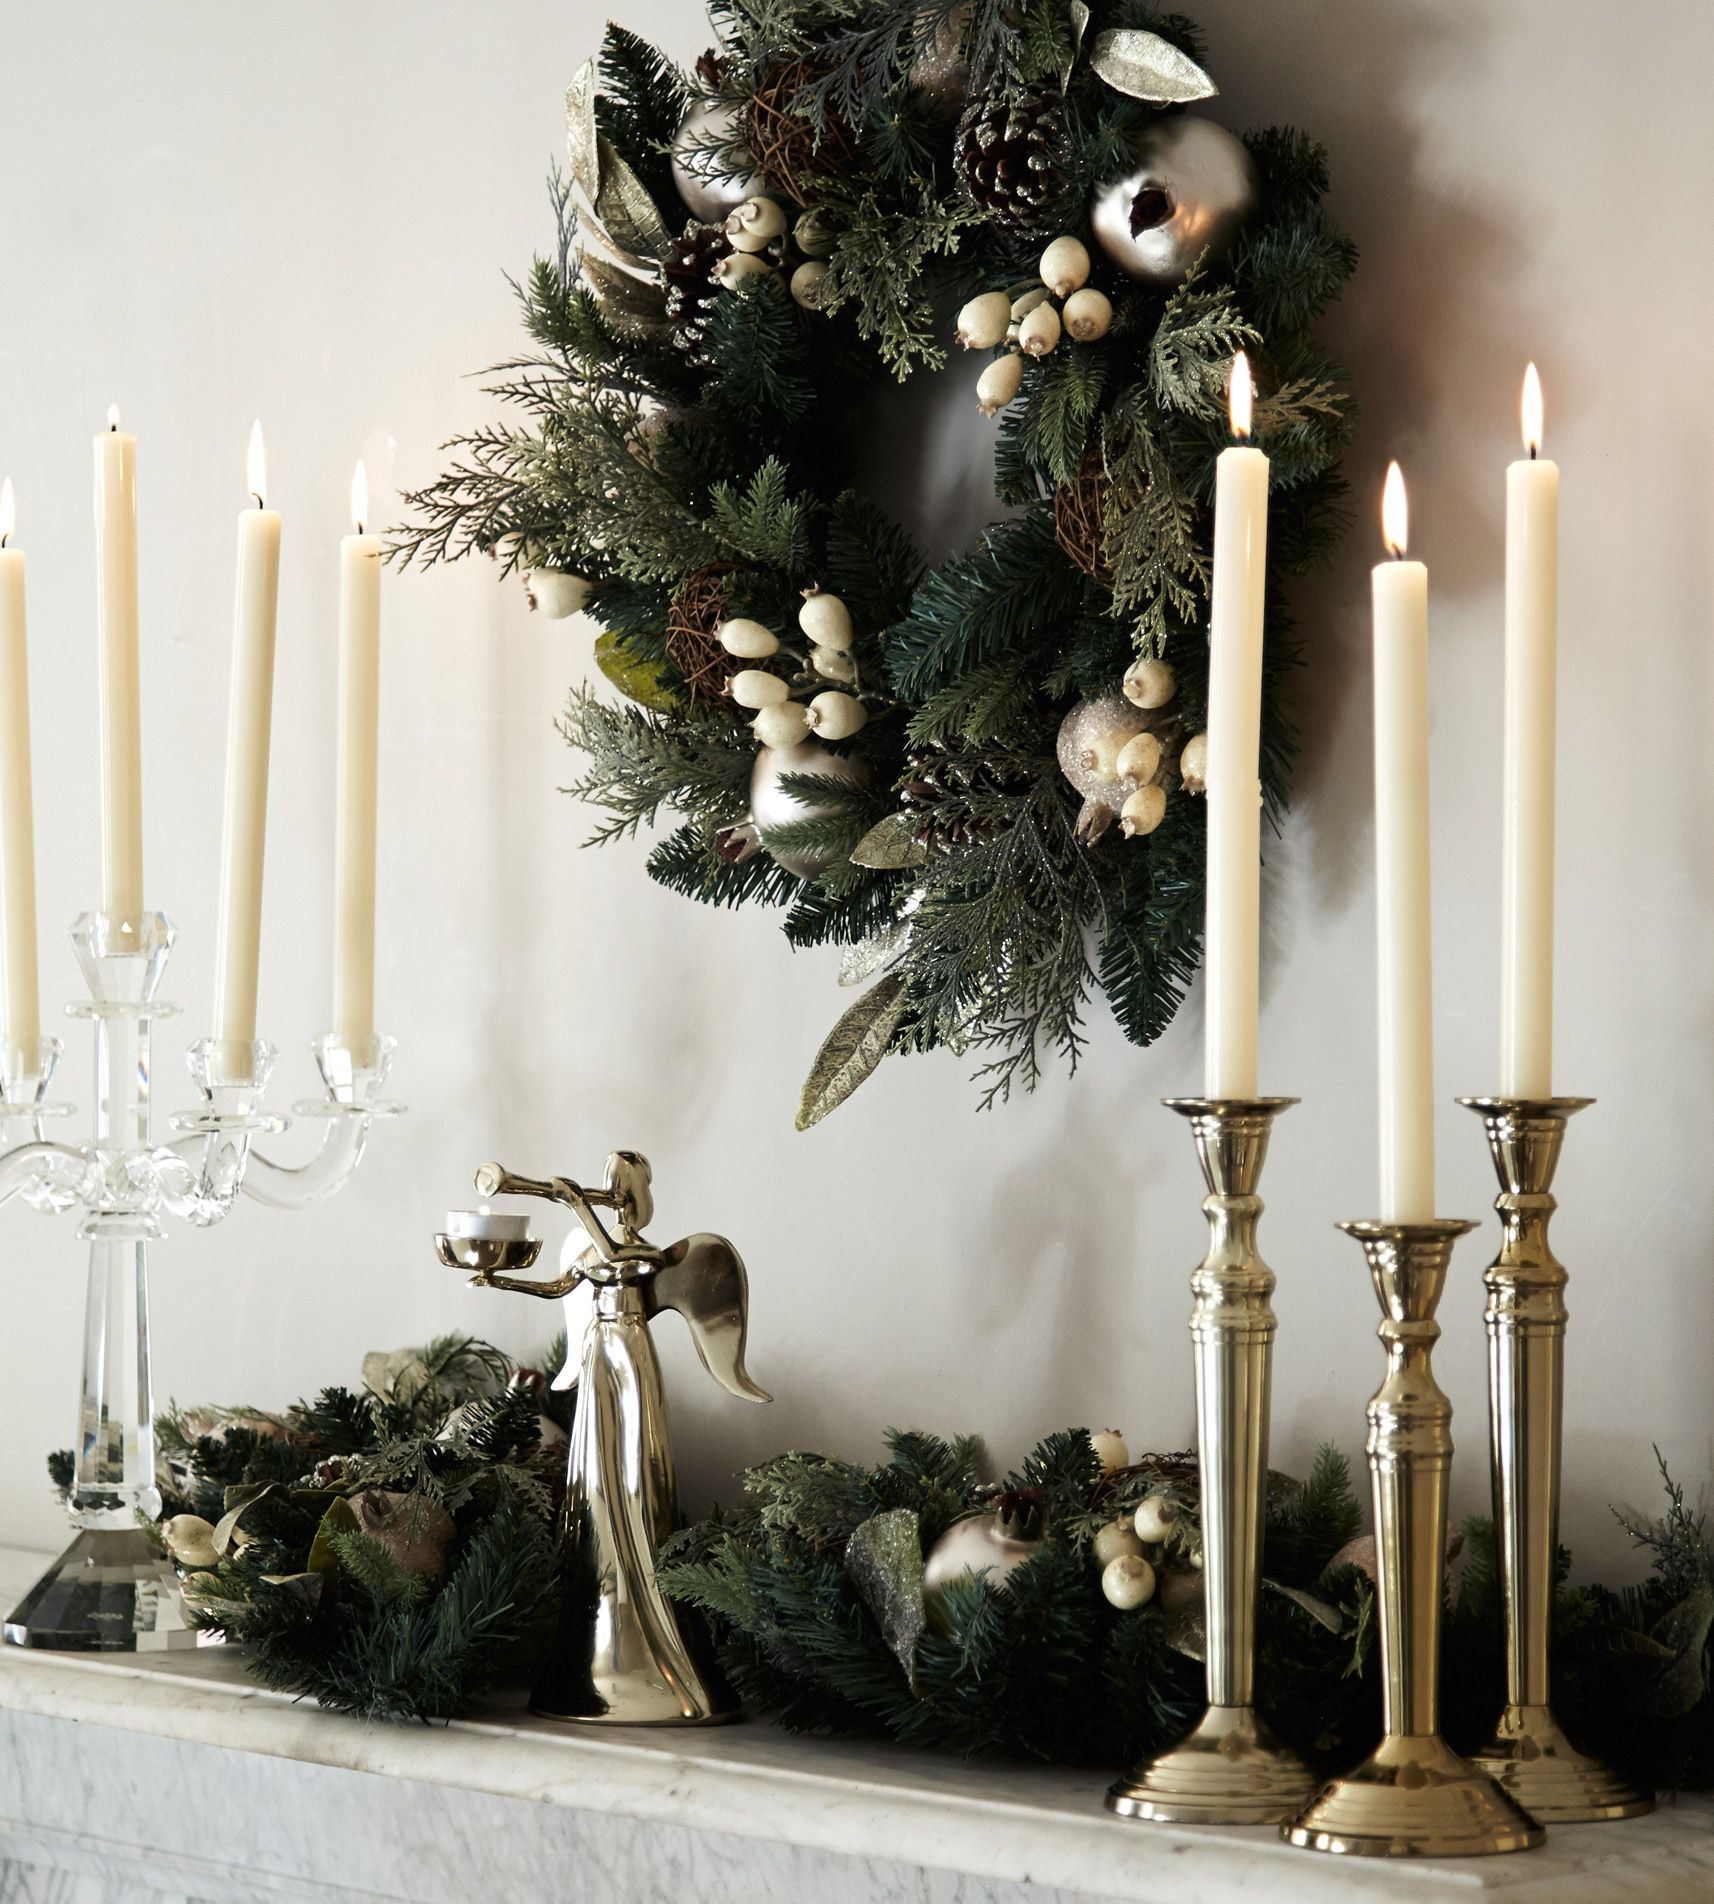 Dunnes Store Christmas Decorations: Candles, Candleholders And Wreath By Paul Costelloe Living